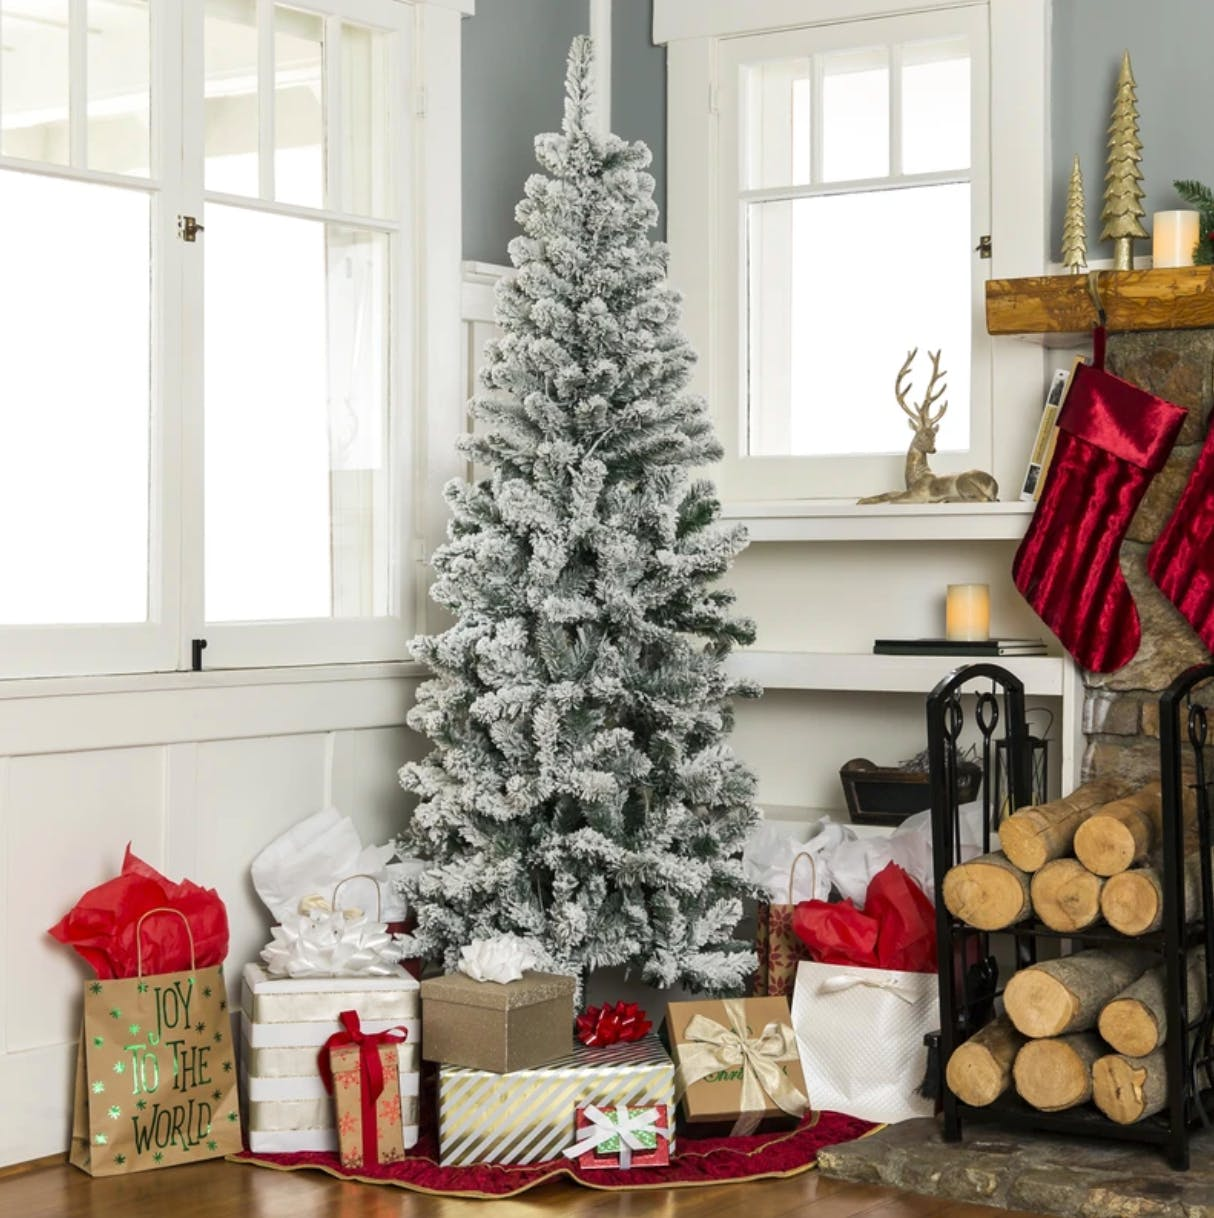 Best Black Friday Christmas Tree Deals 2020 The Krazy Coupon Lady